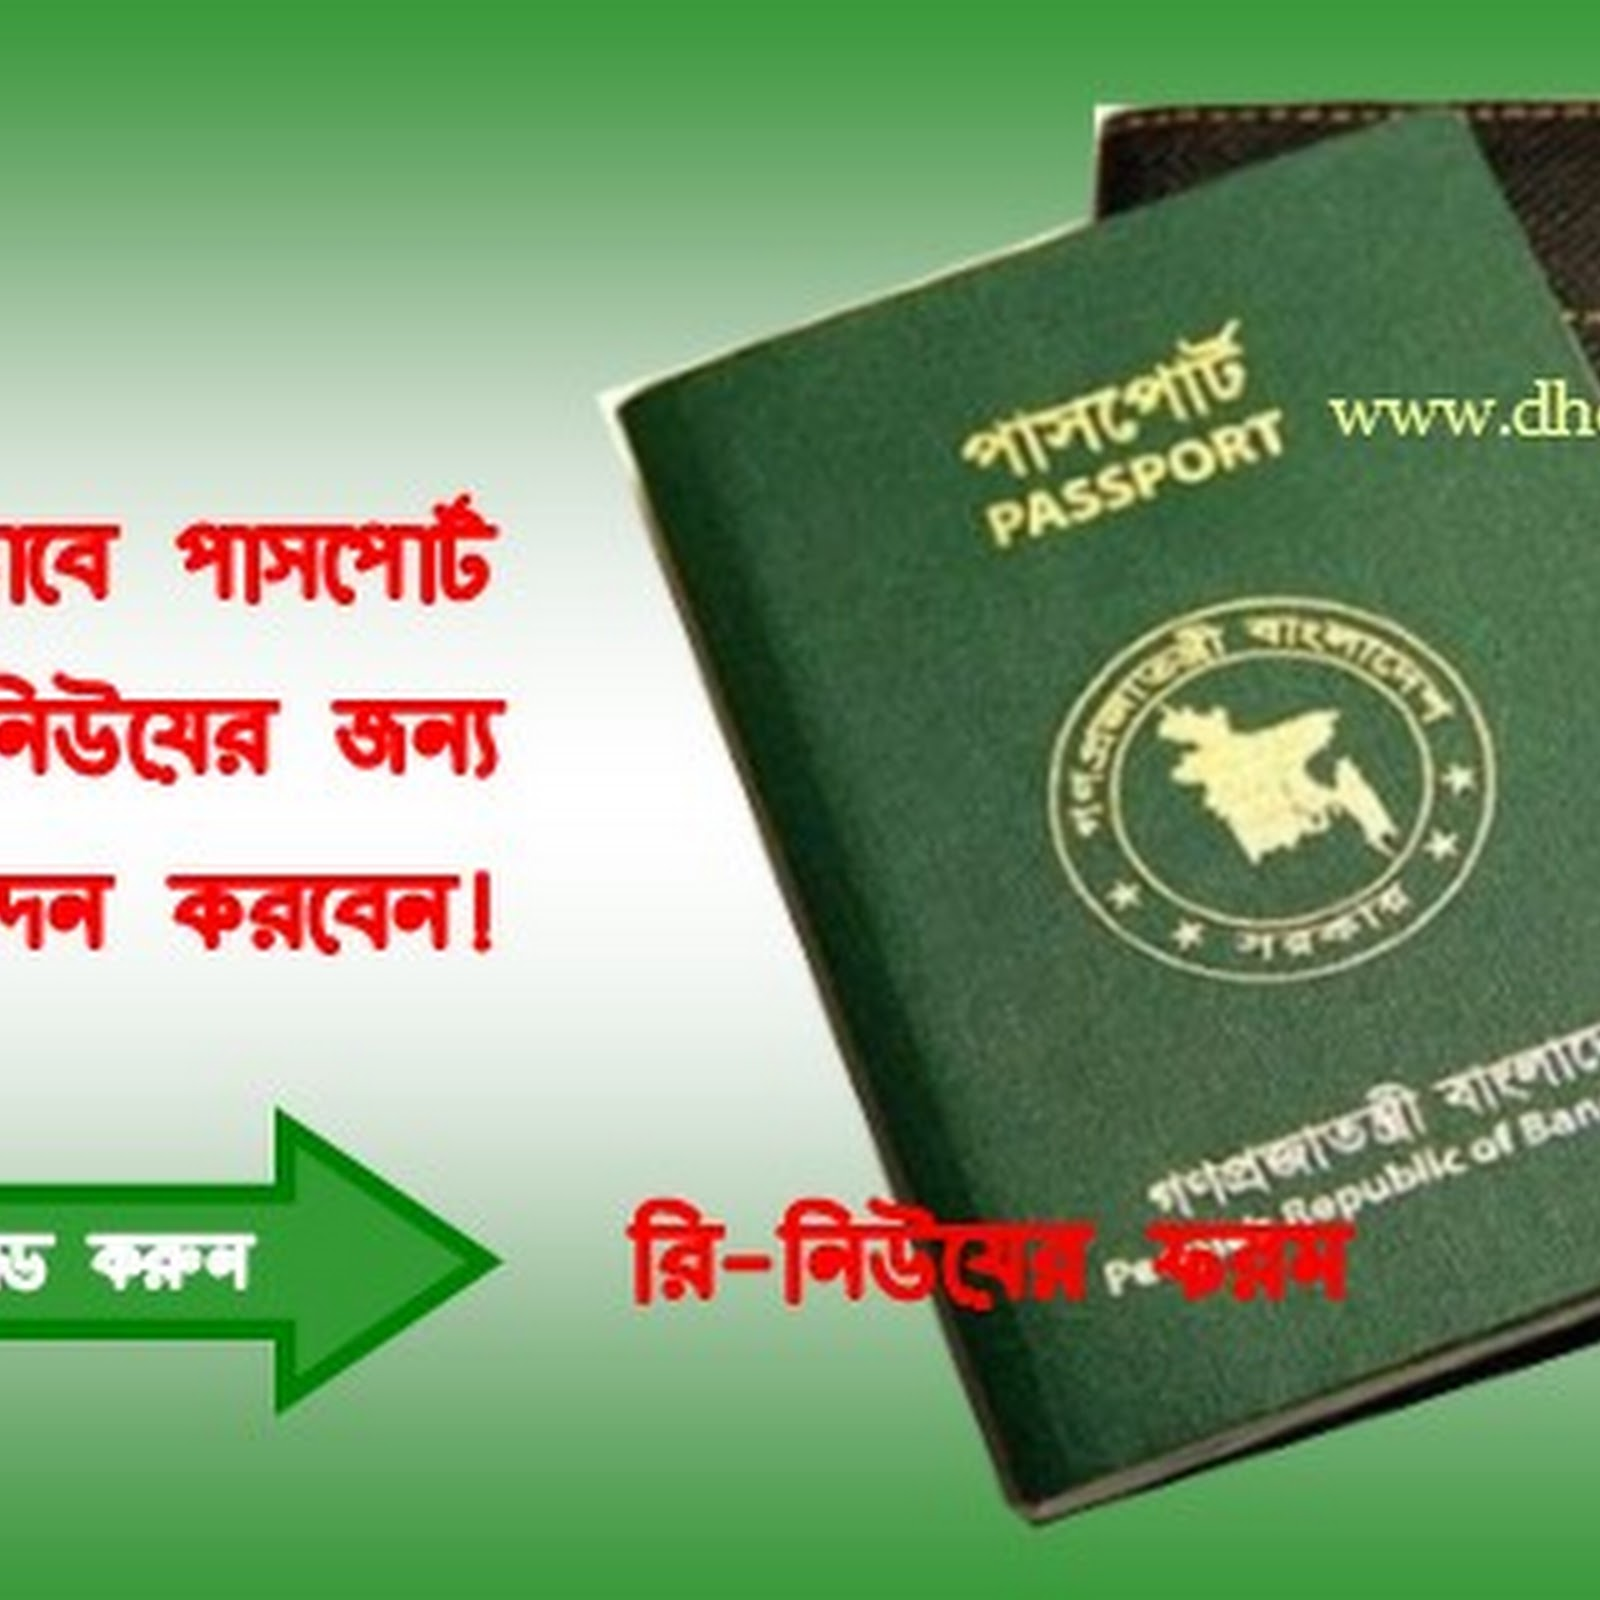 How to Passport Renewal Form In Bangladesh